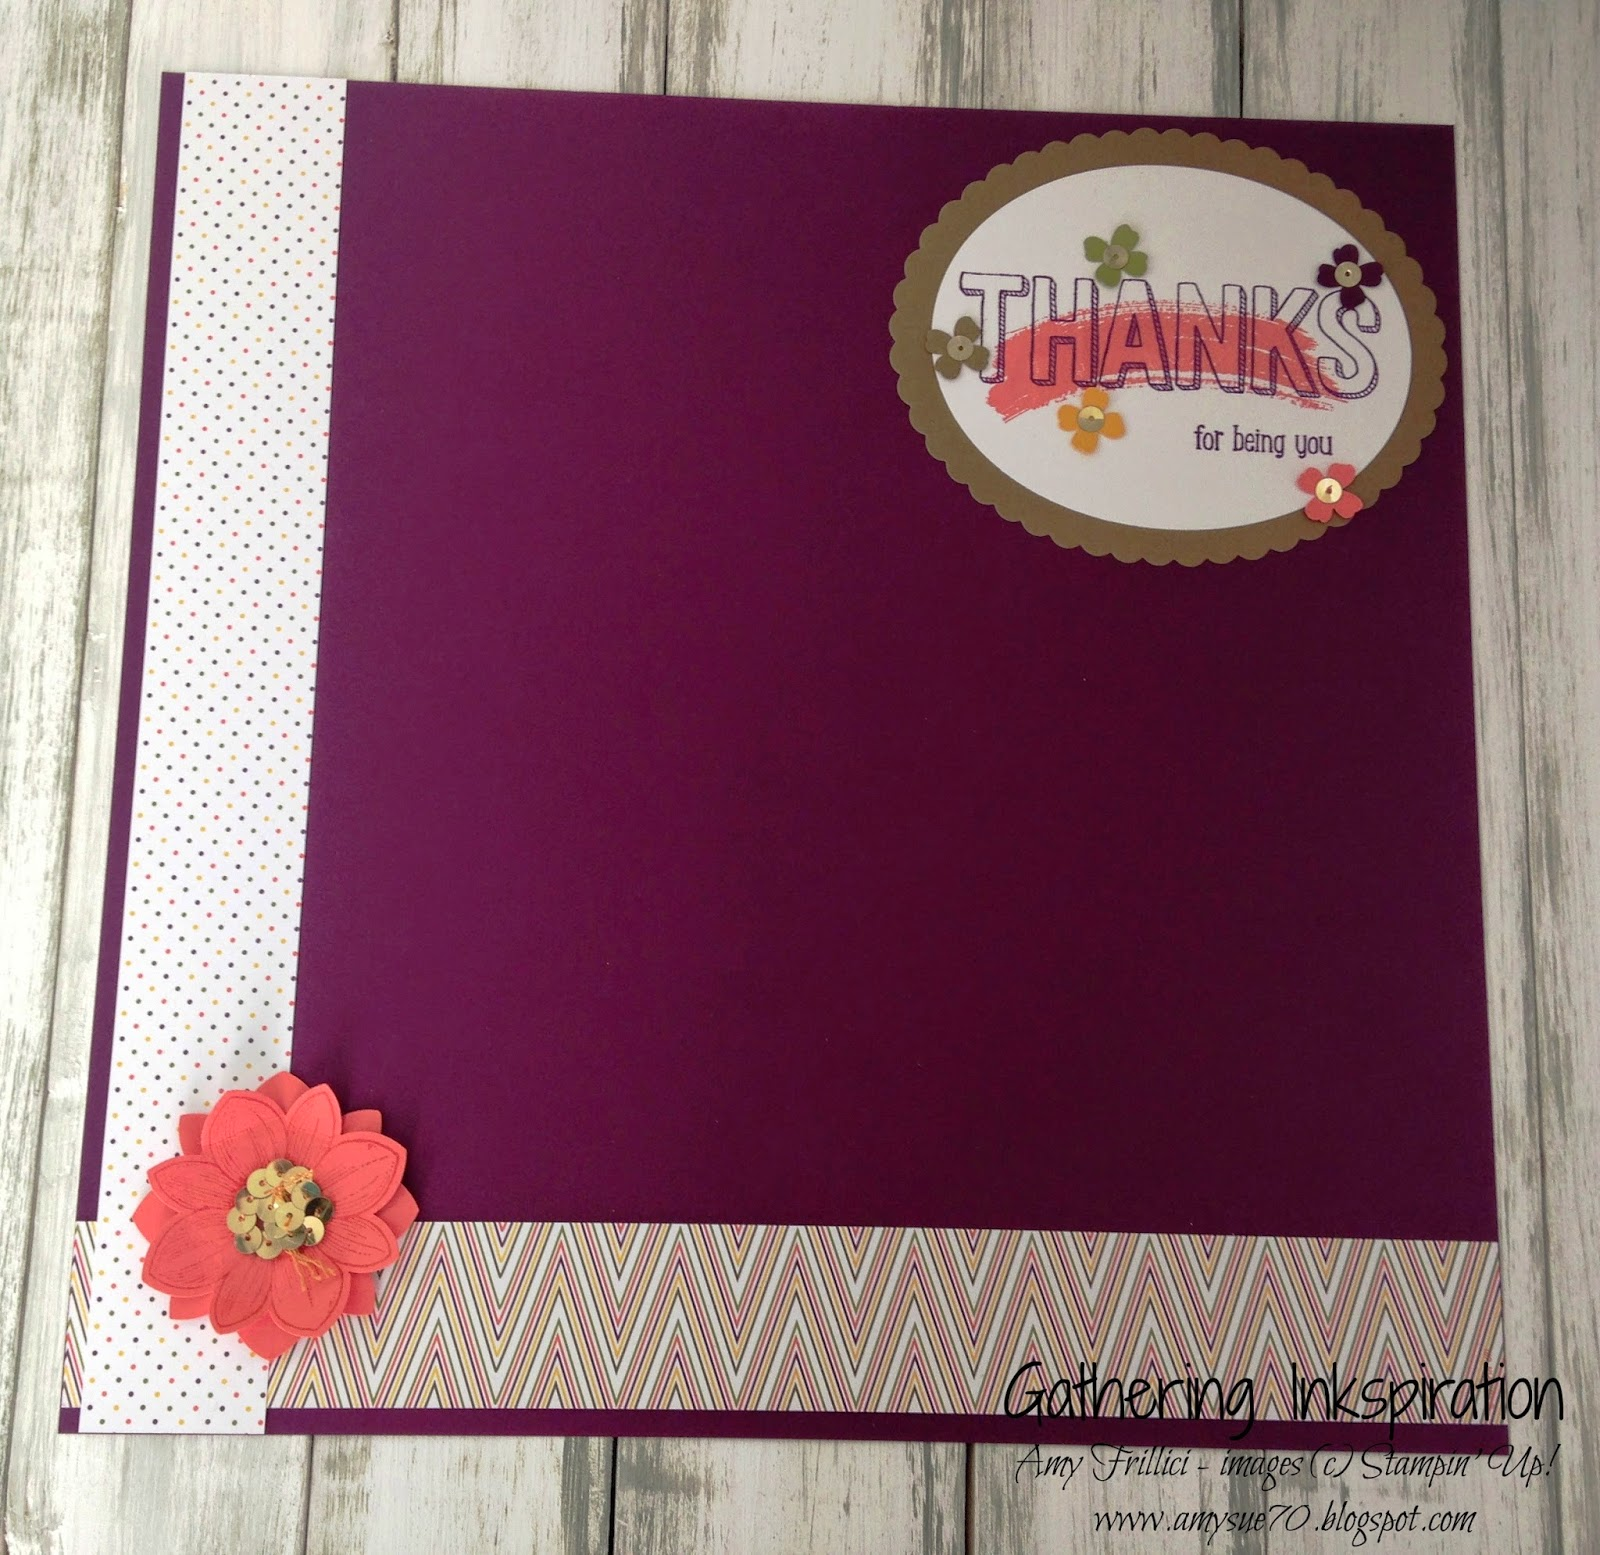 How to scrapbook yahoo - We Start Our Page With A Blackberry Bliss Base Then Add A Couple Of Strips Of The Park Lane Designer Series Paper To The Side And Bottom Of The Page